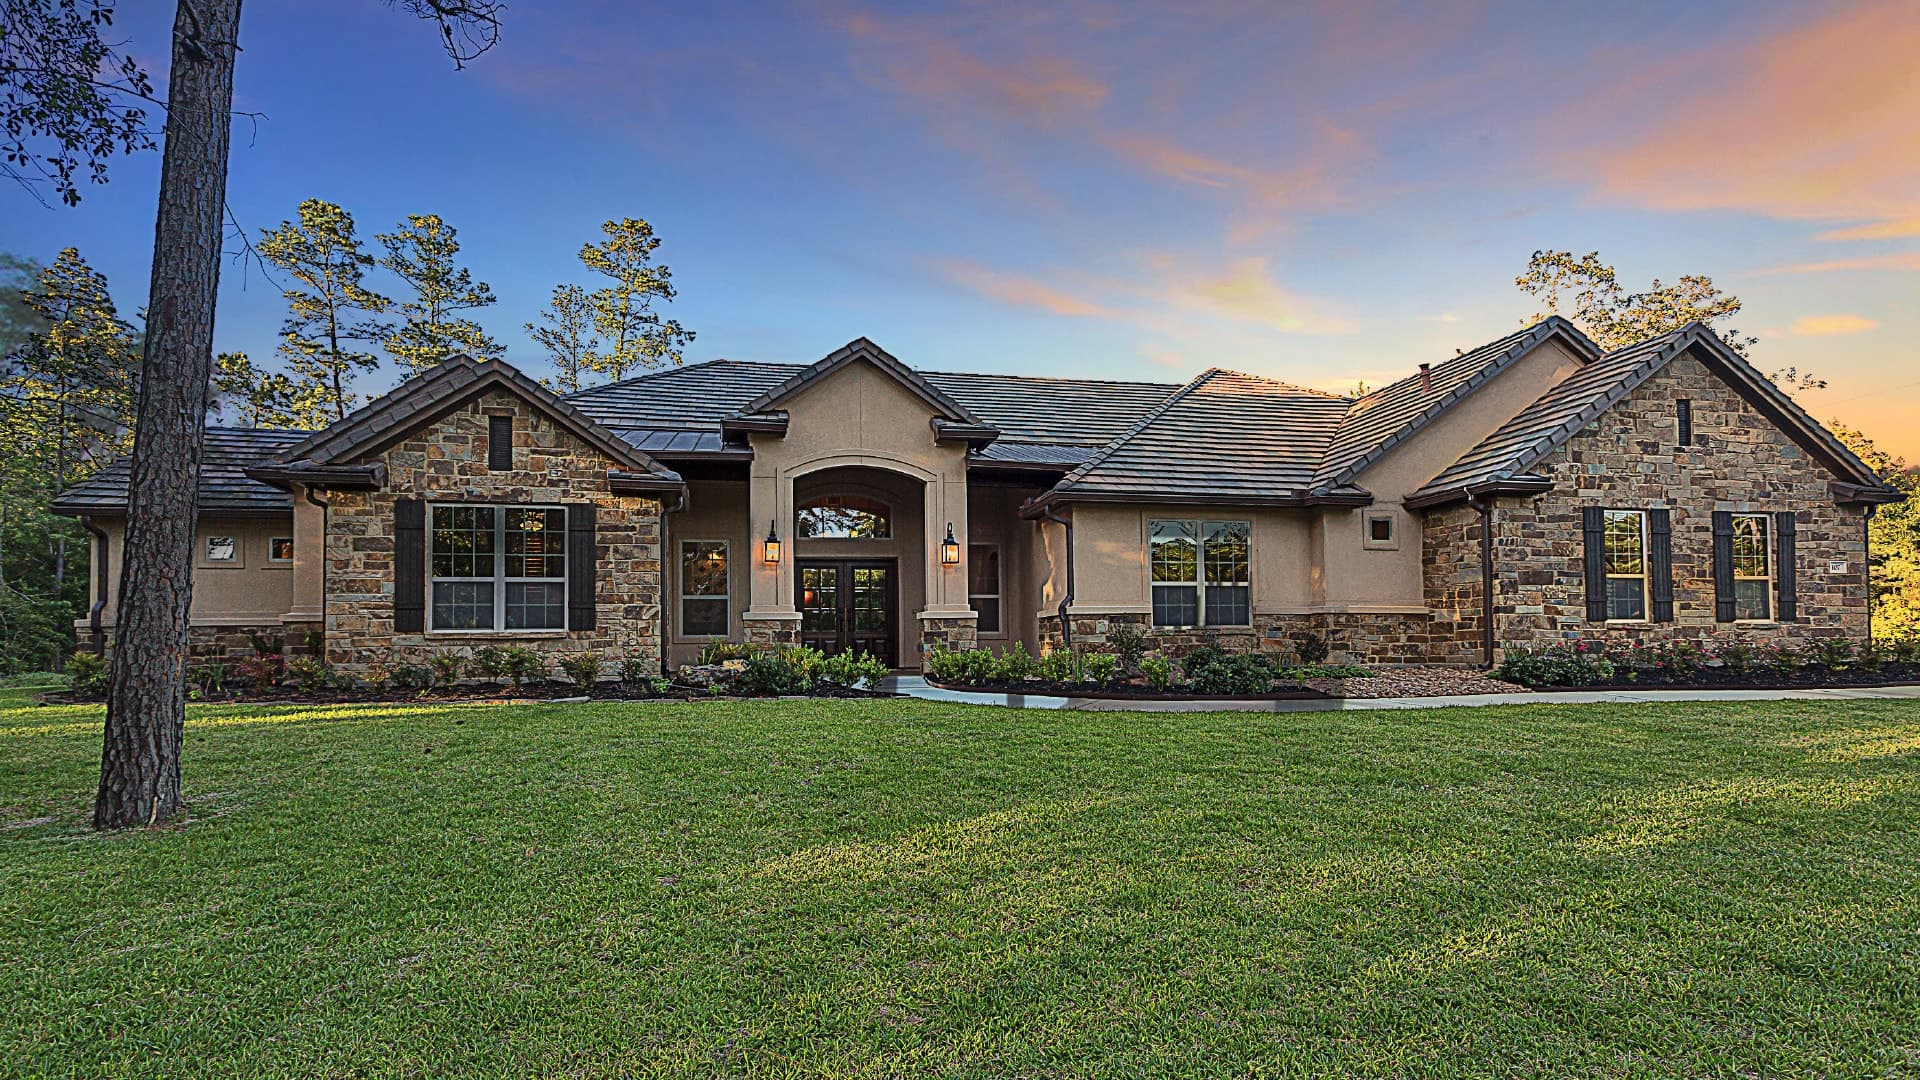 sierra classic custom homes texas hill country custom home builder